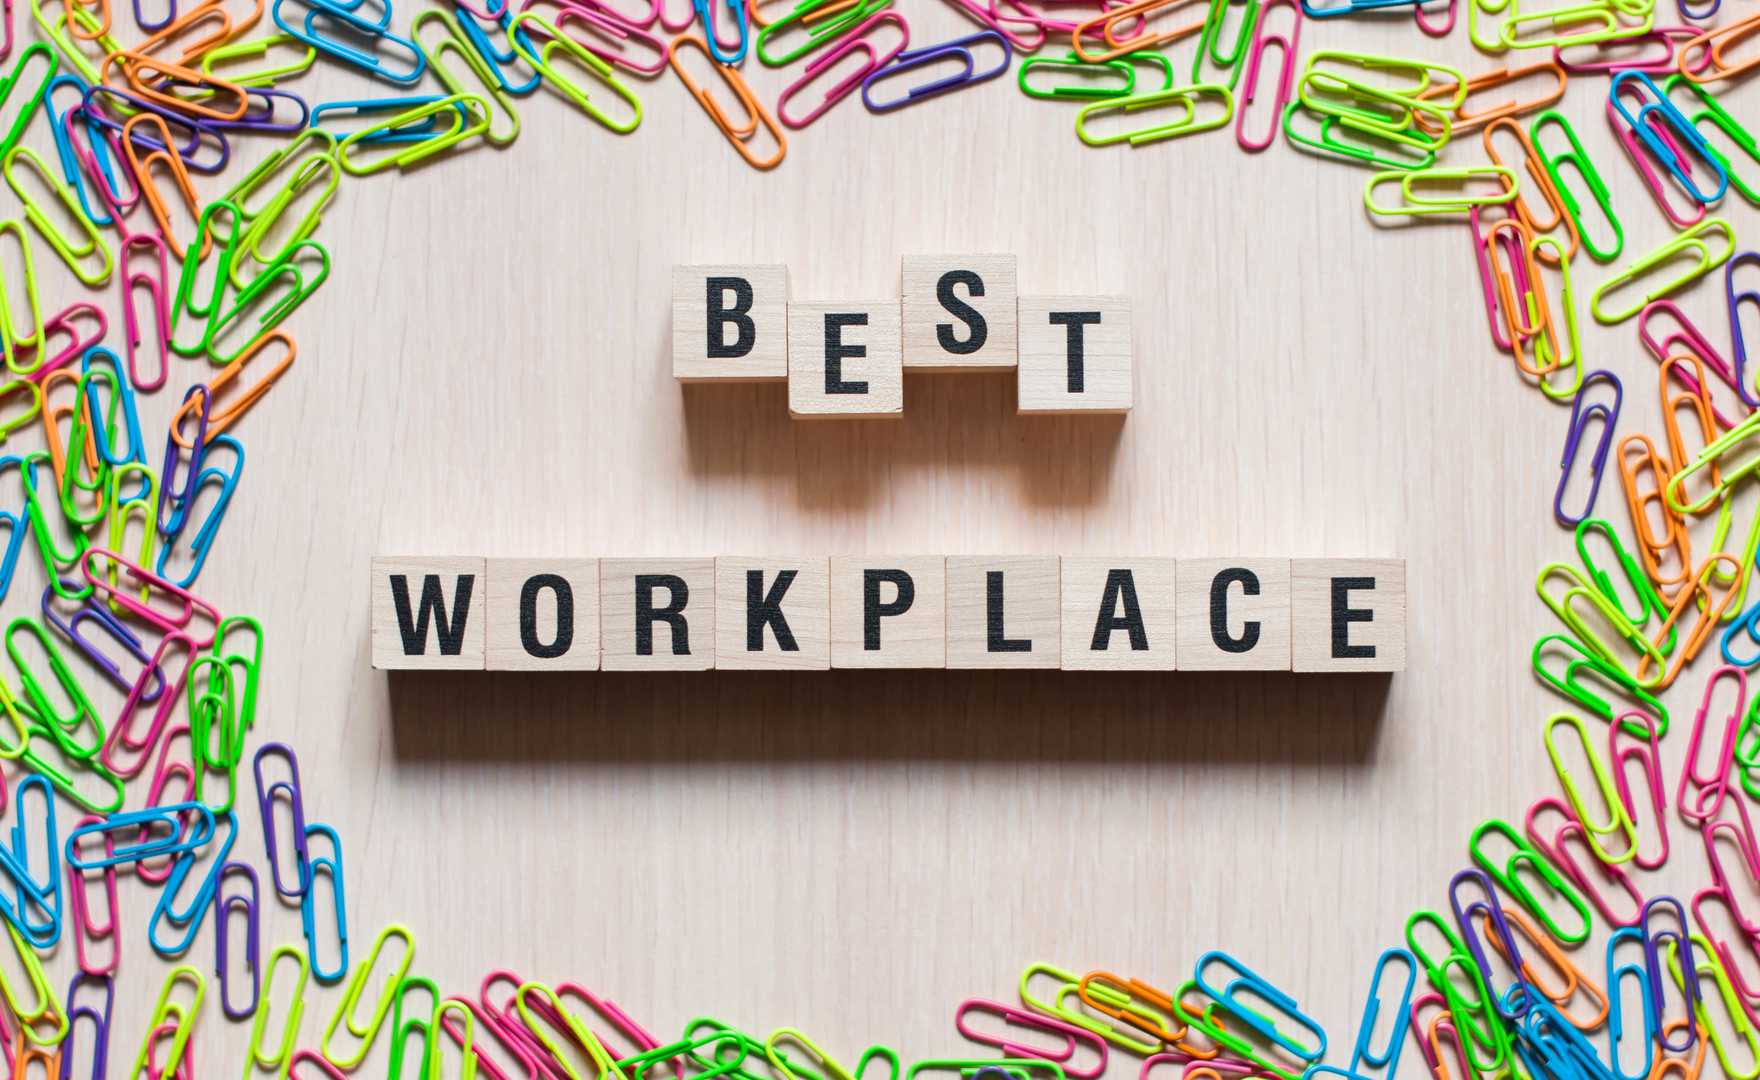 Sunday Times Top 100 Best Places to Work coaching culture